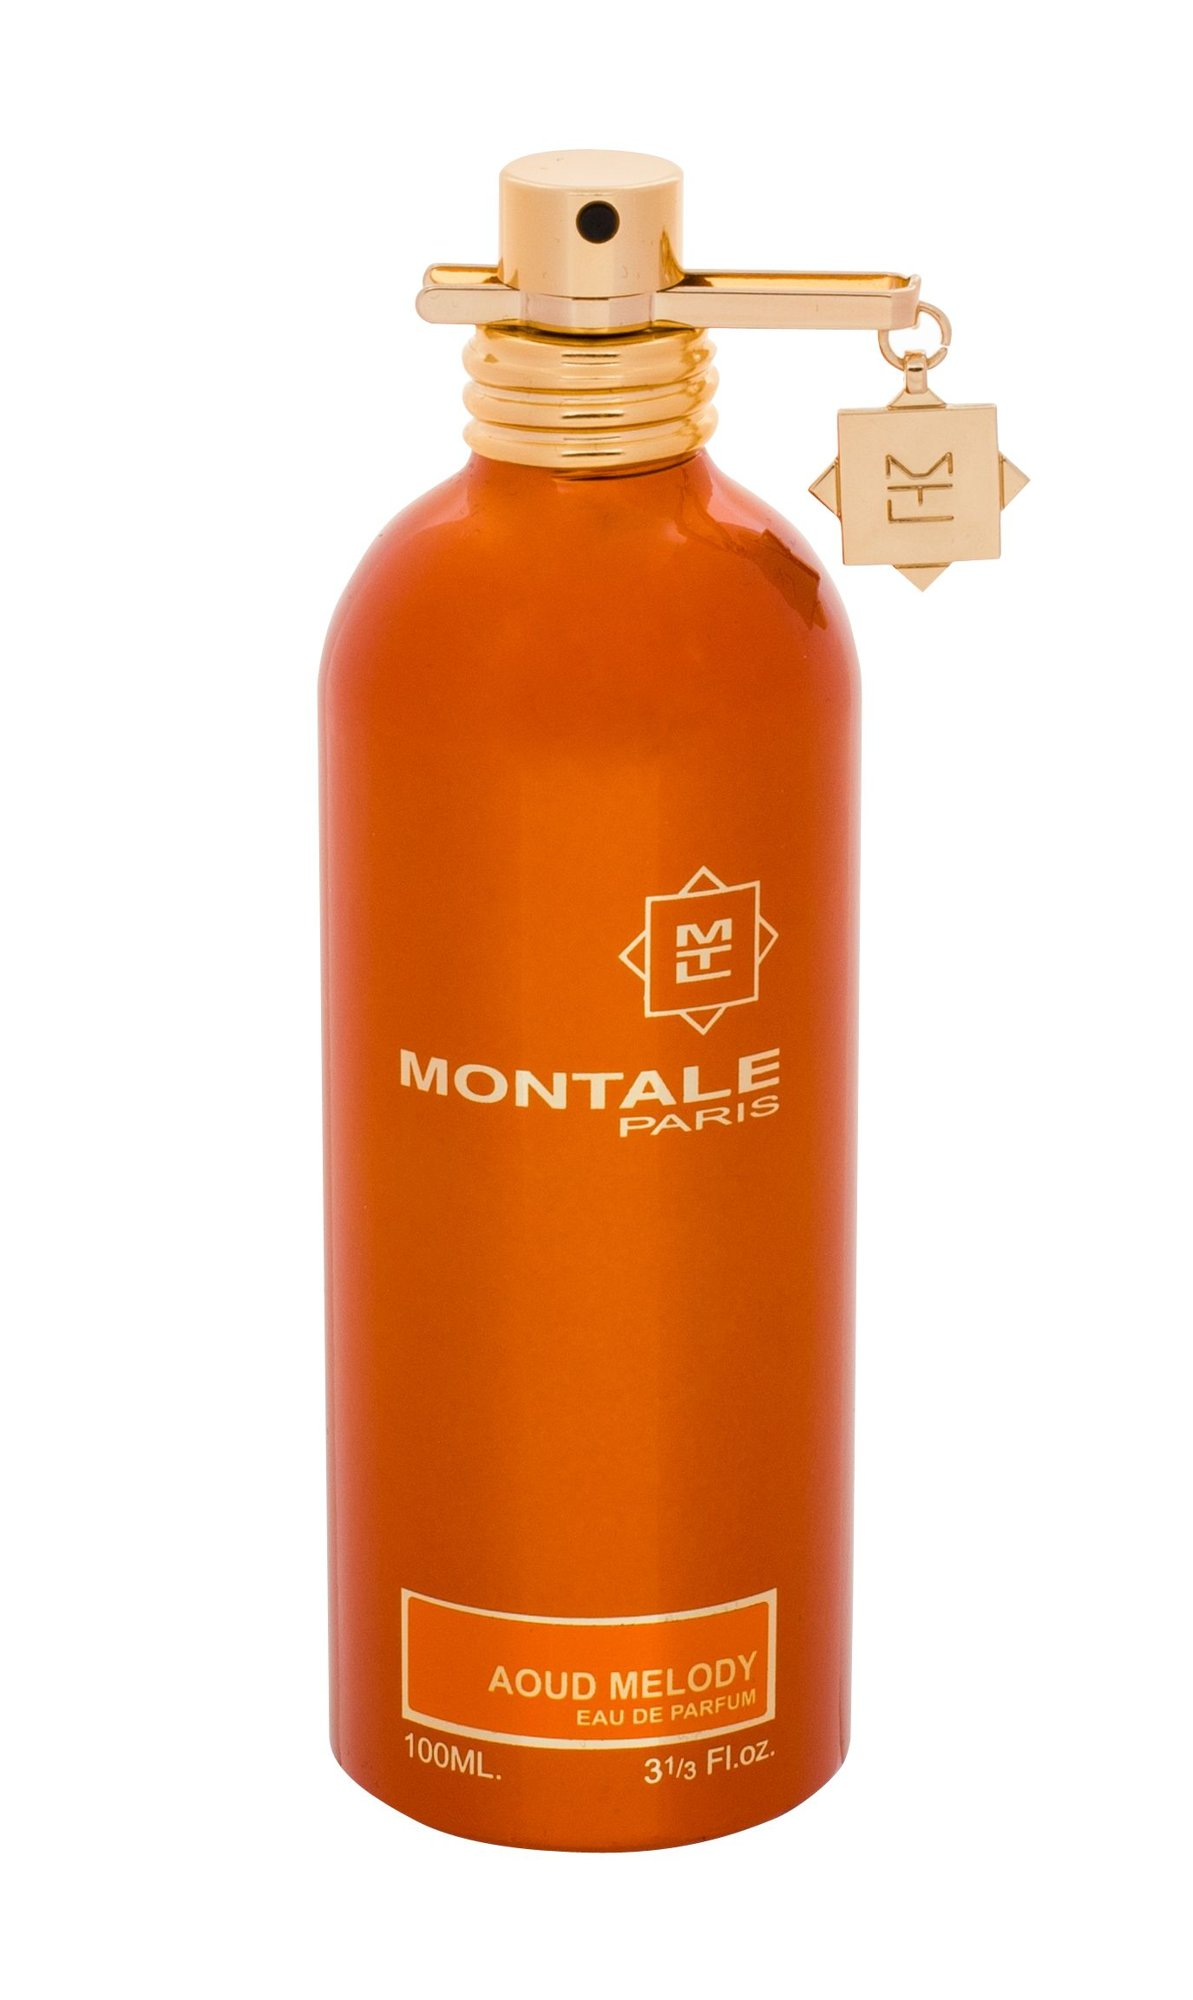 Montale Paris Aoud Melody EDP 100ml